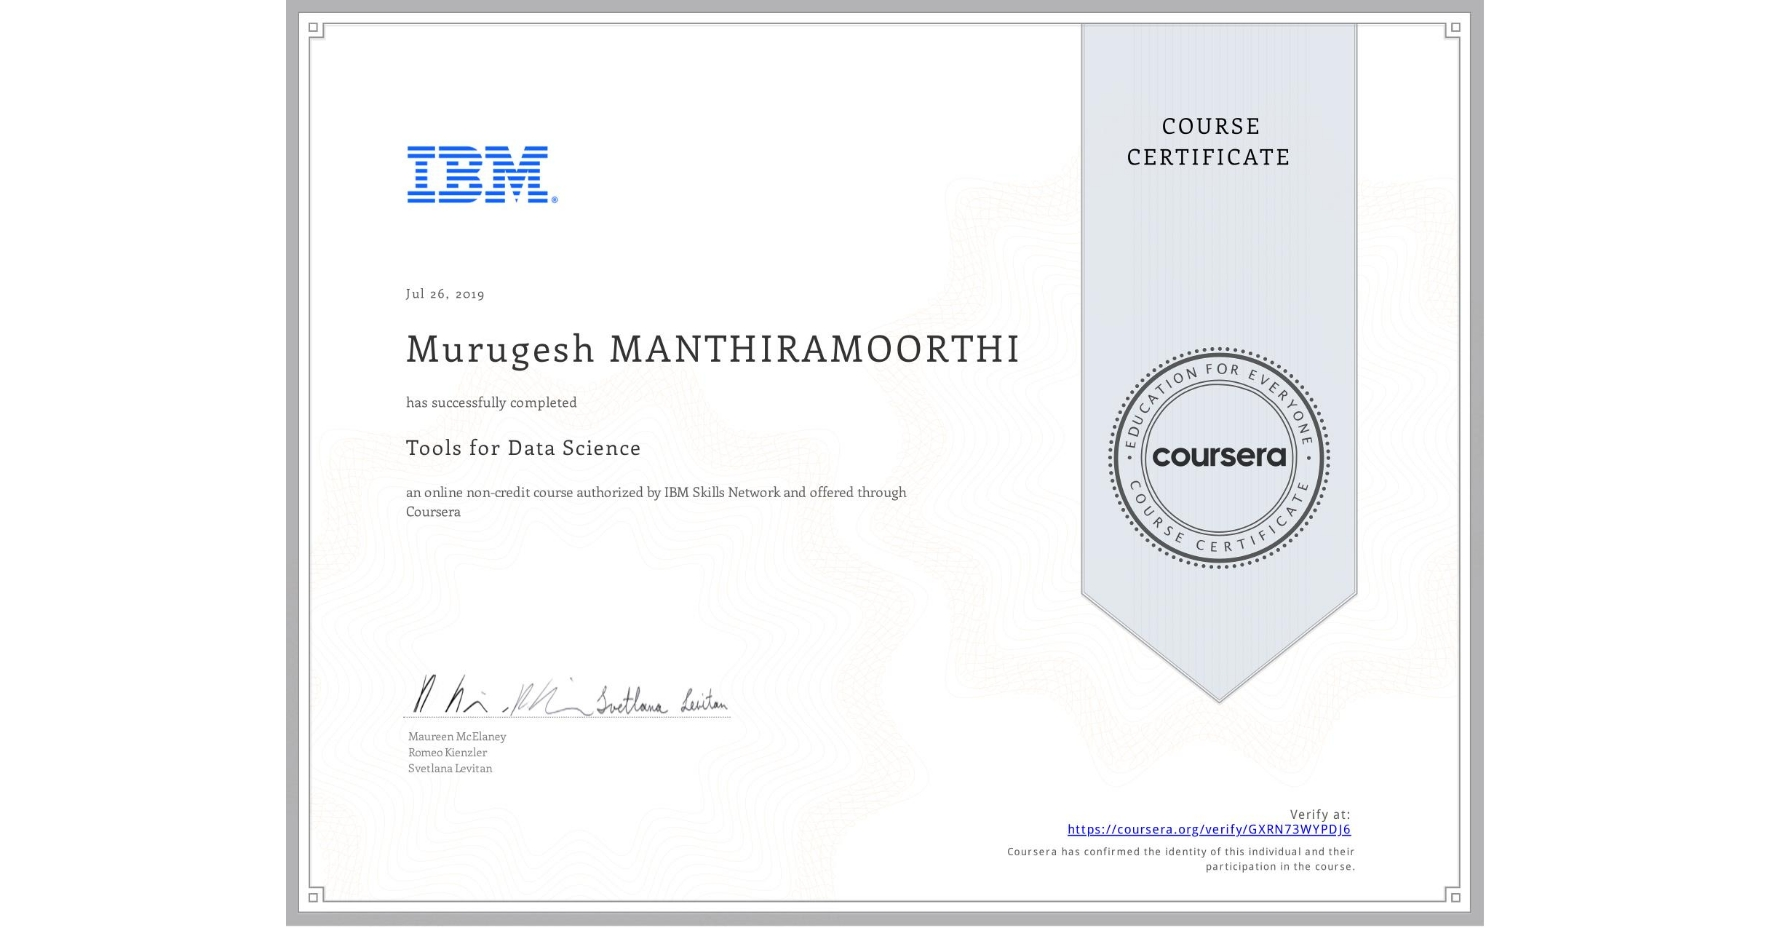 View certificate for Murugesh Manthiramoorthi, Tools for Data Science, an online non-credit course authorized by IBM and offered through Coursera